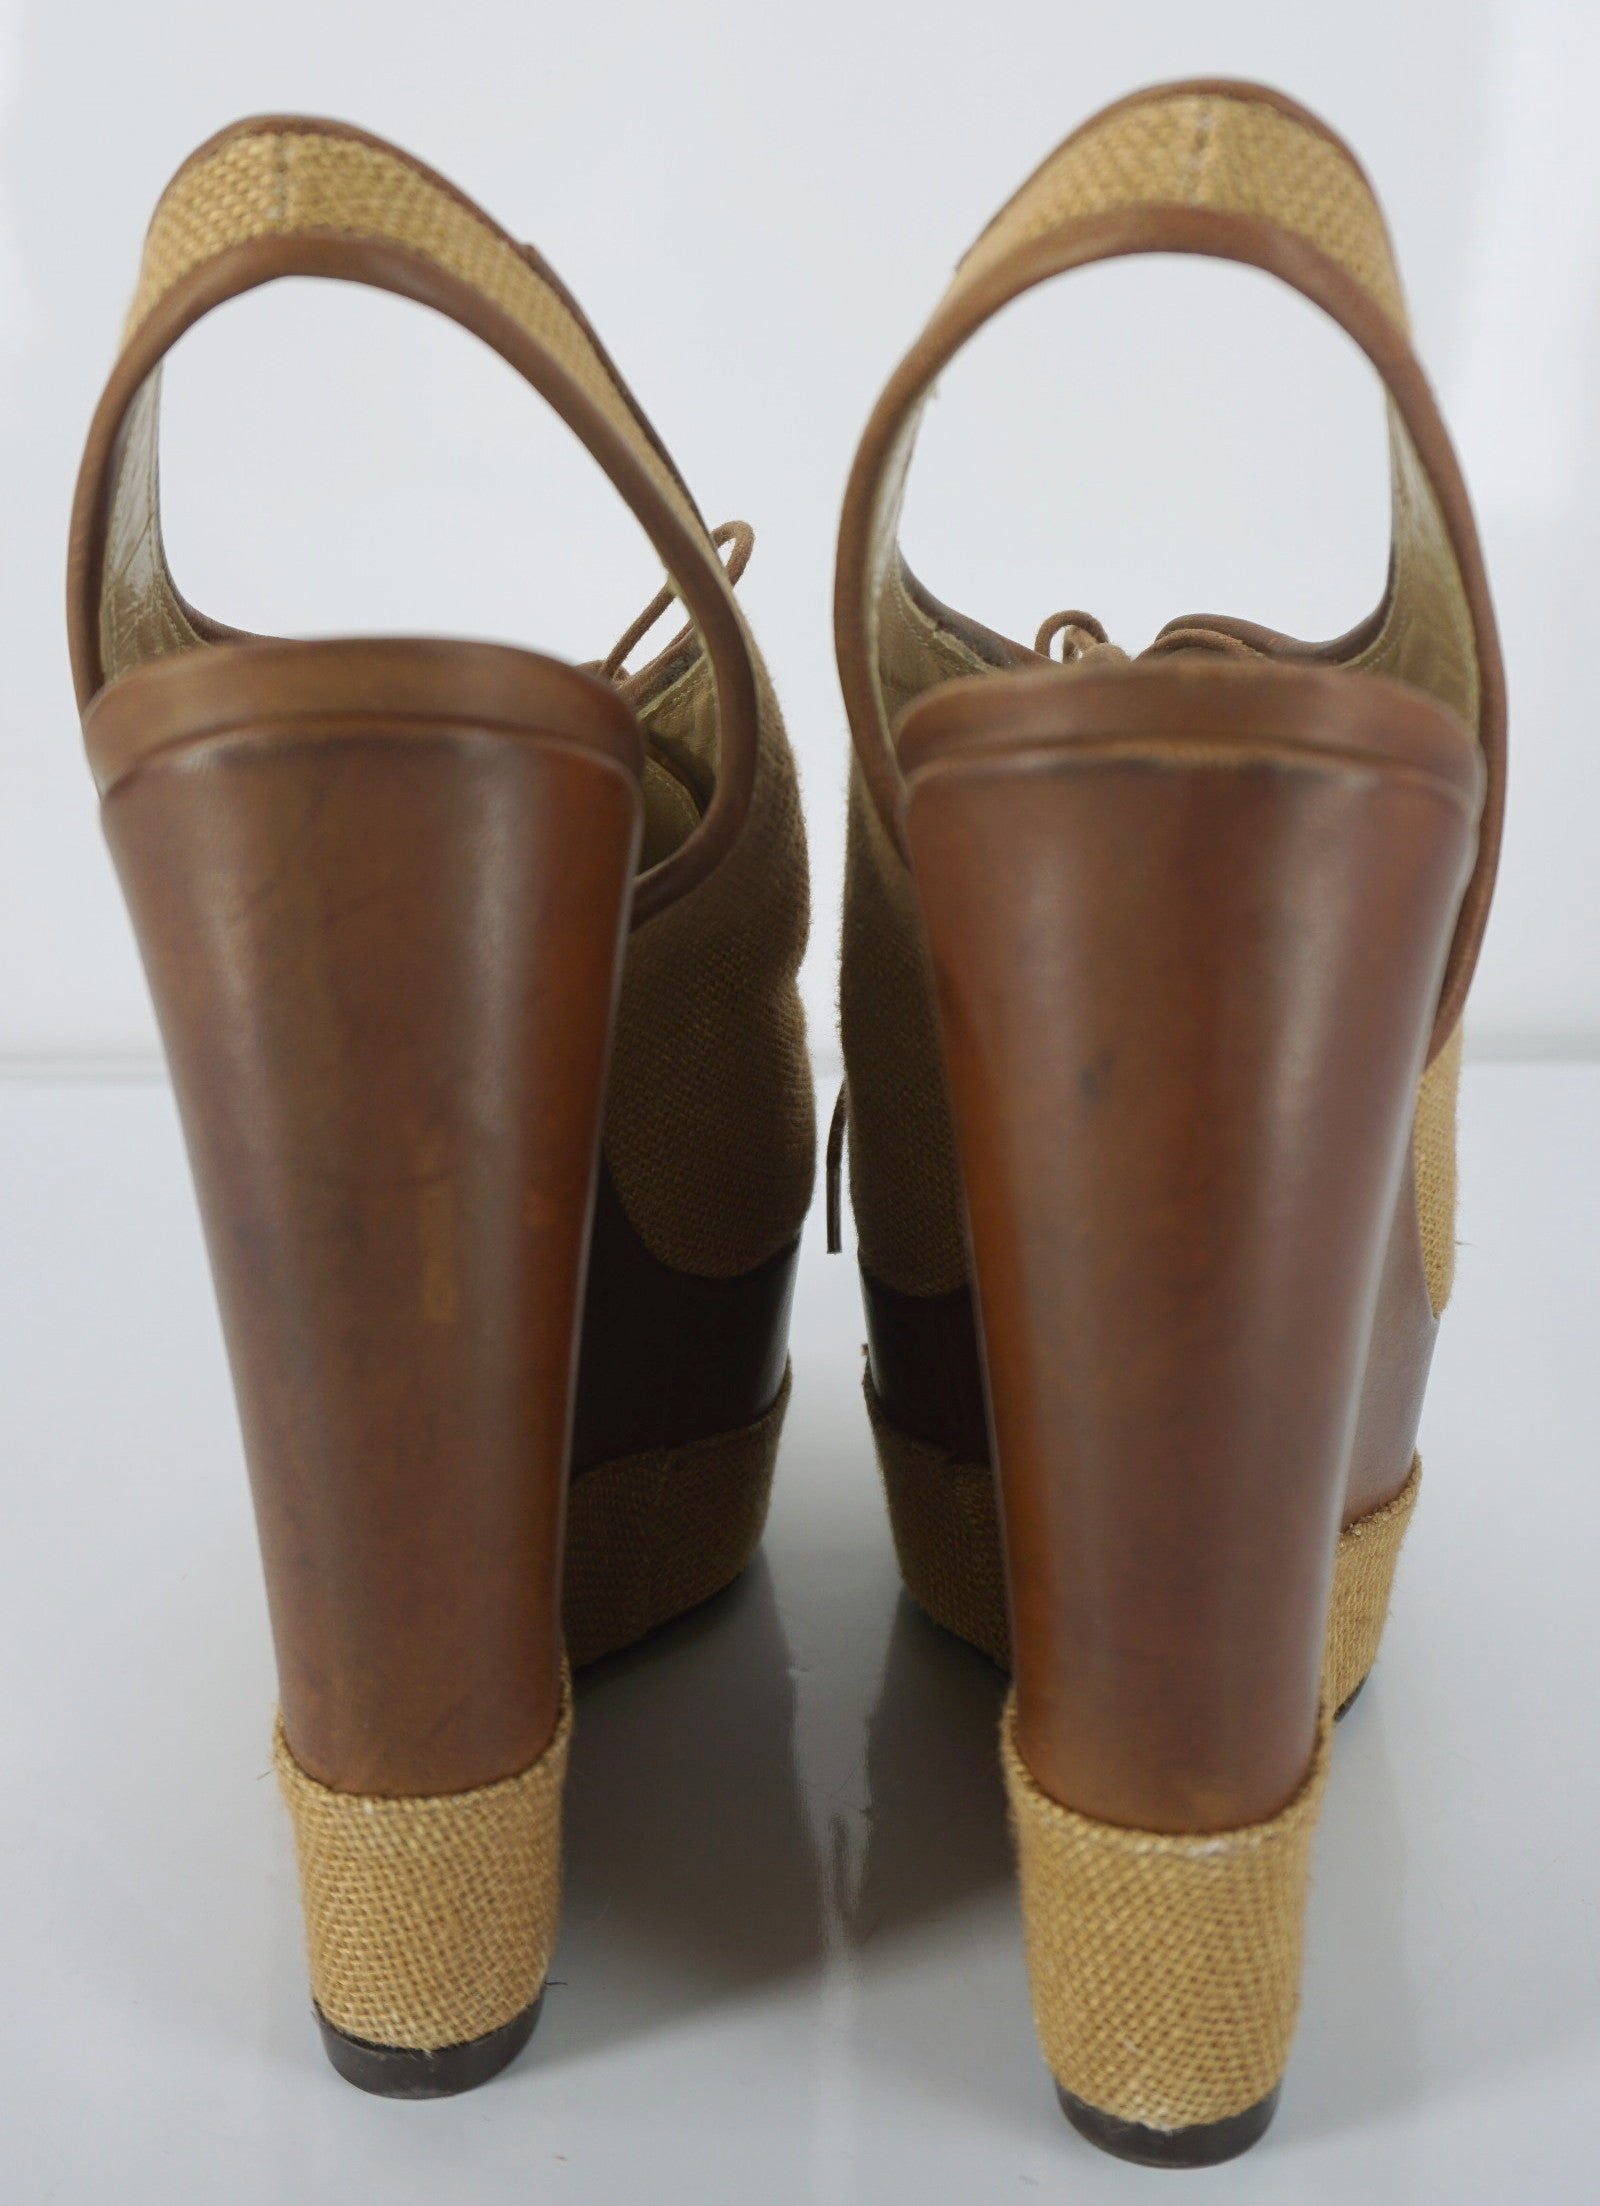 Stuart Weitzman Brown Leather Itsatie Platform Wedge Slingback Pumps SZ 8.5 NIB